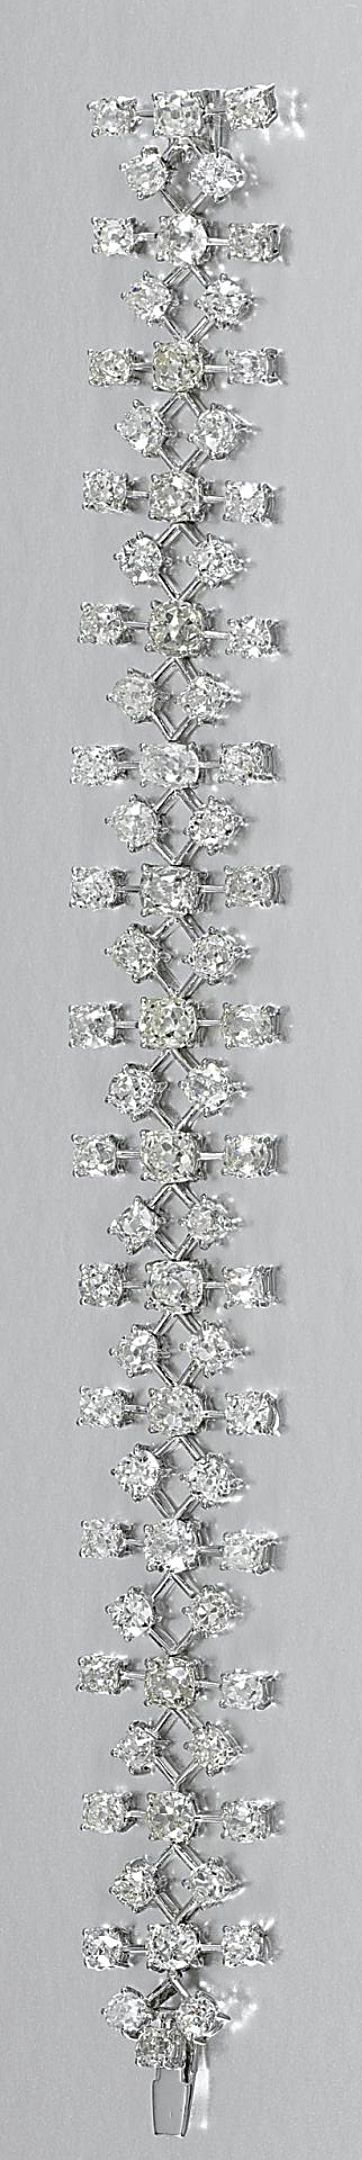 DIAMOND BRACELET Designed as a series of knife-edge bar inks, interspersed with circular-cut and cushion-shaped diamonds, length approximately 180mm.